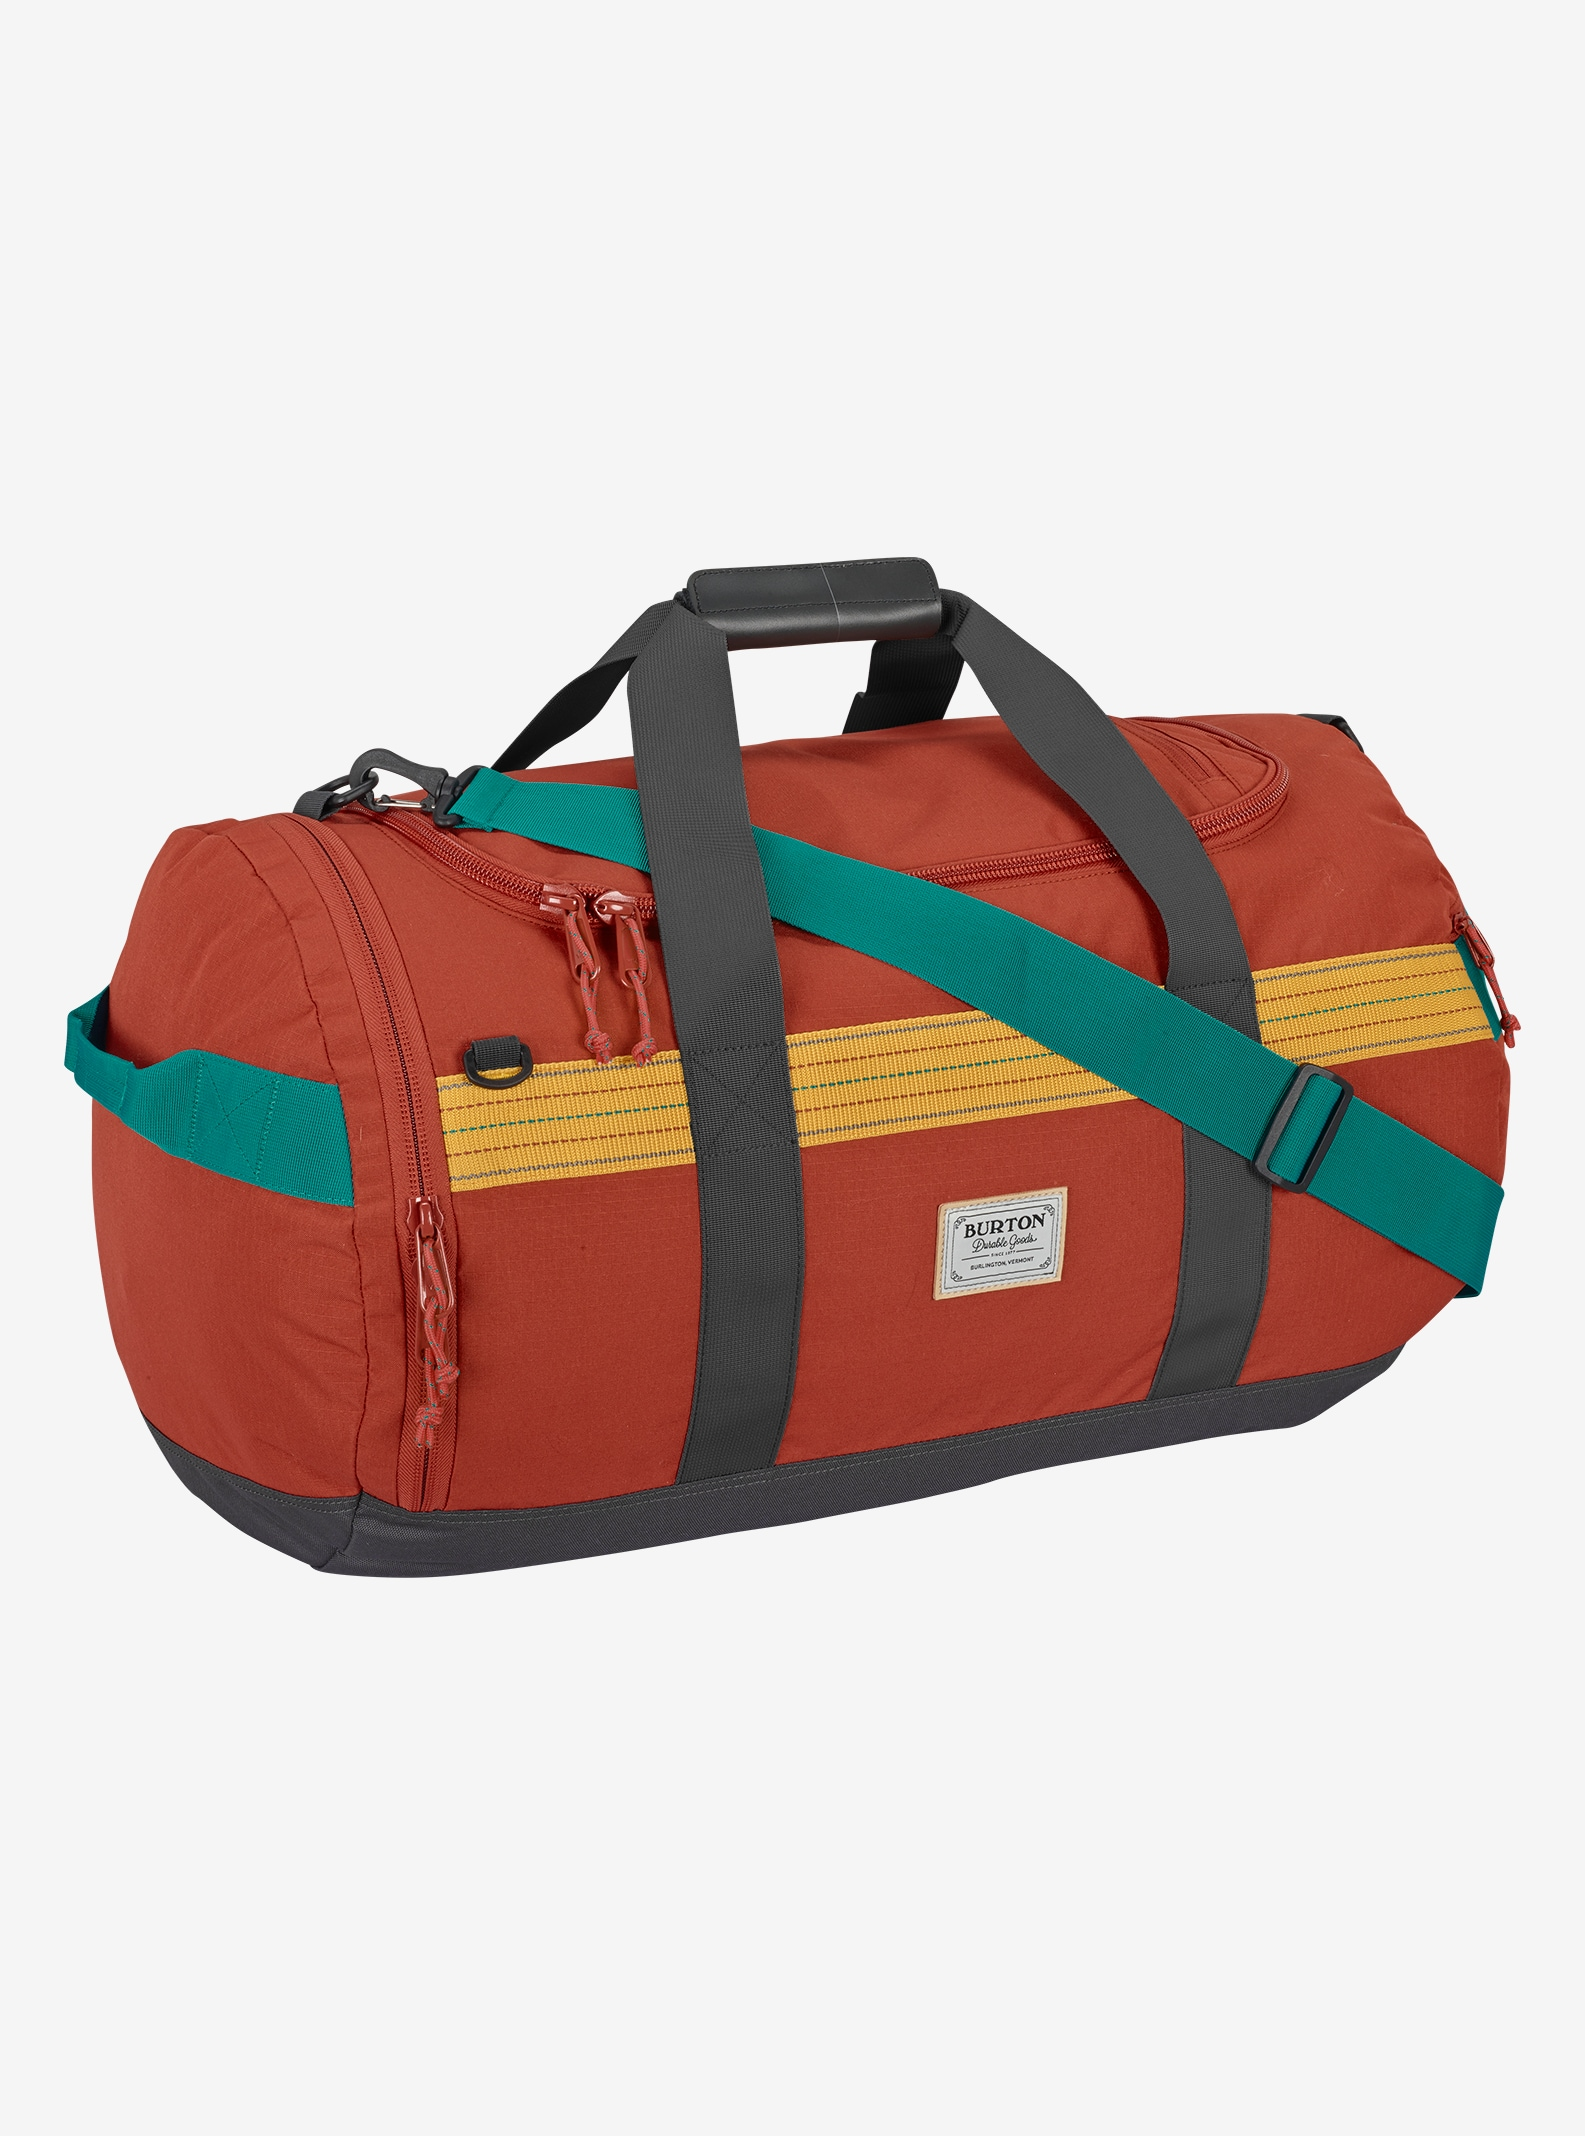 Burton Backhill Duffel Bag Medium 70L shown in Tandori Ripstop